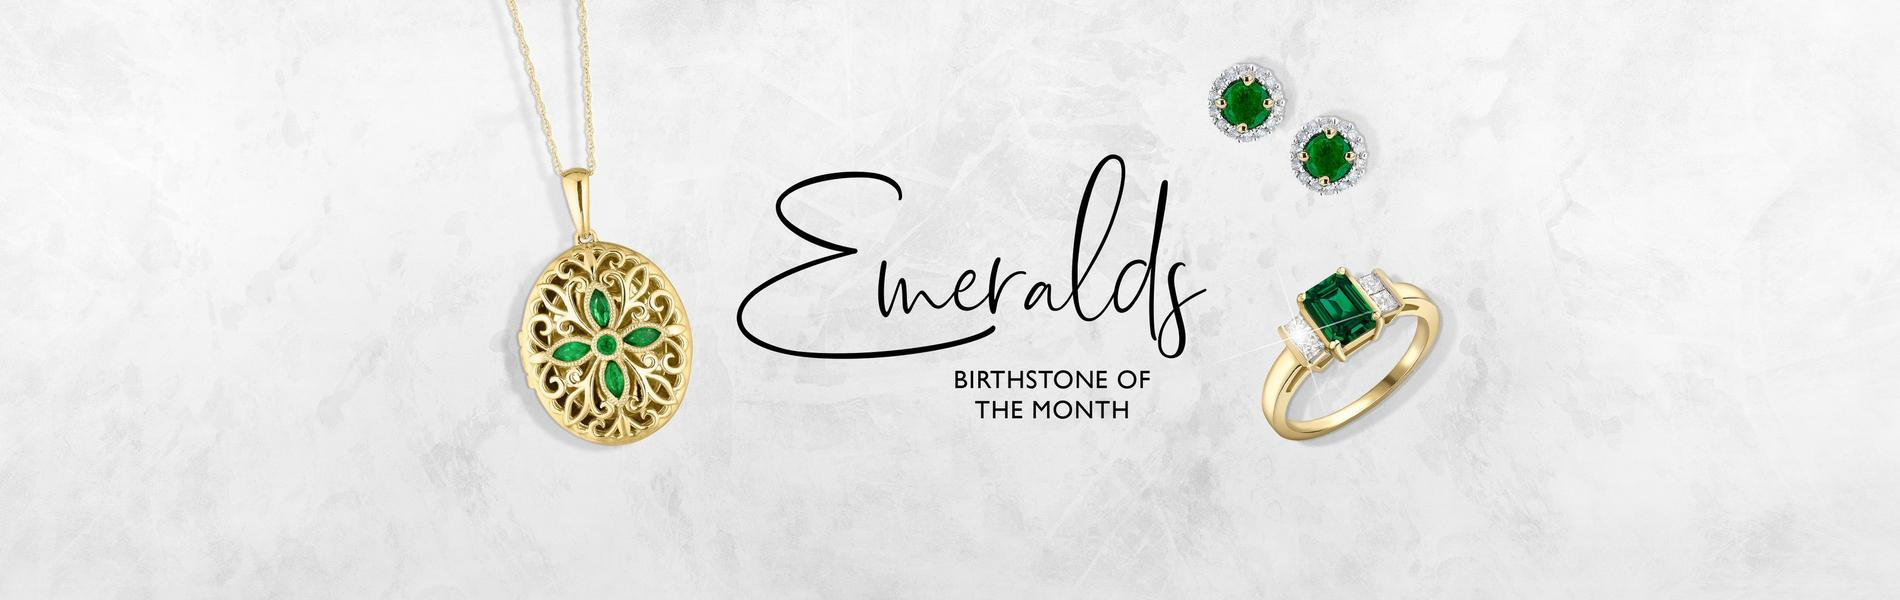 Emerald- birthstone of the month for May